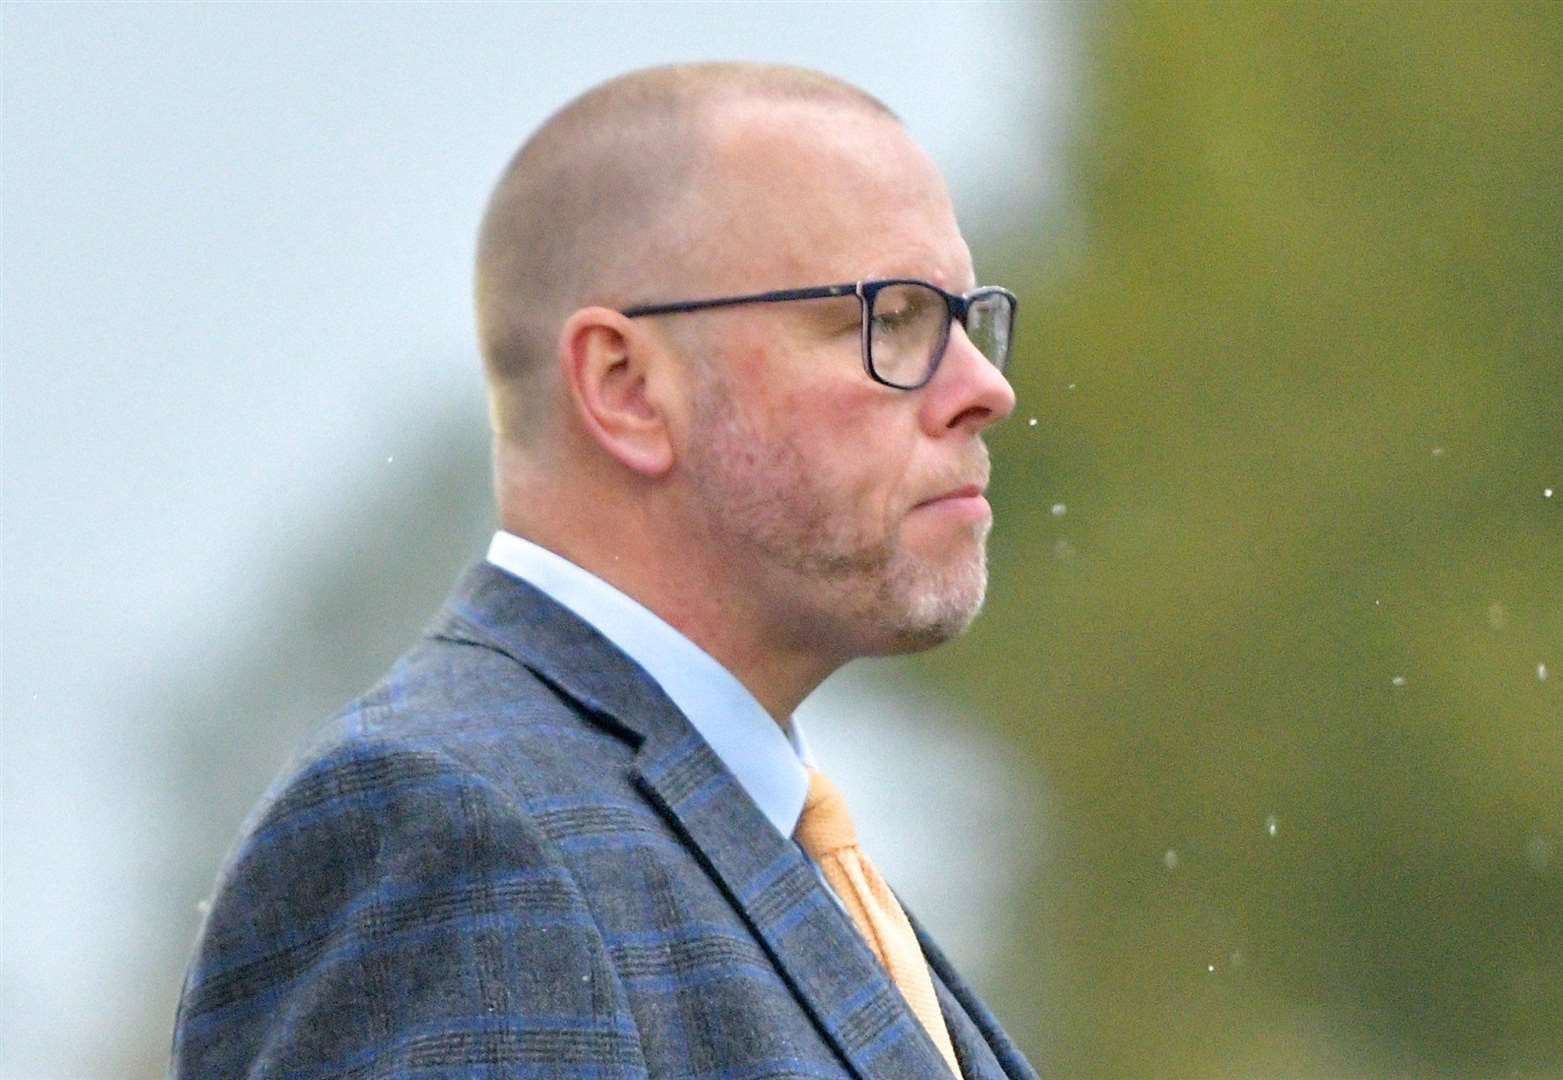 ISTHMIAN LEAGUE: Morsley calls for season to be scrapped ahead of league chiefs' meeting